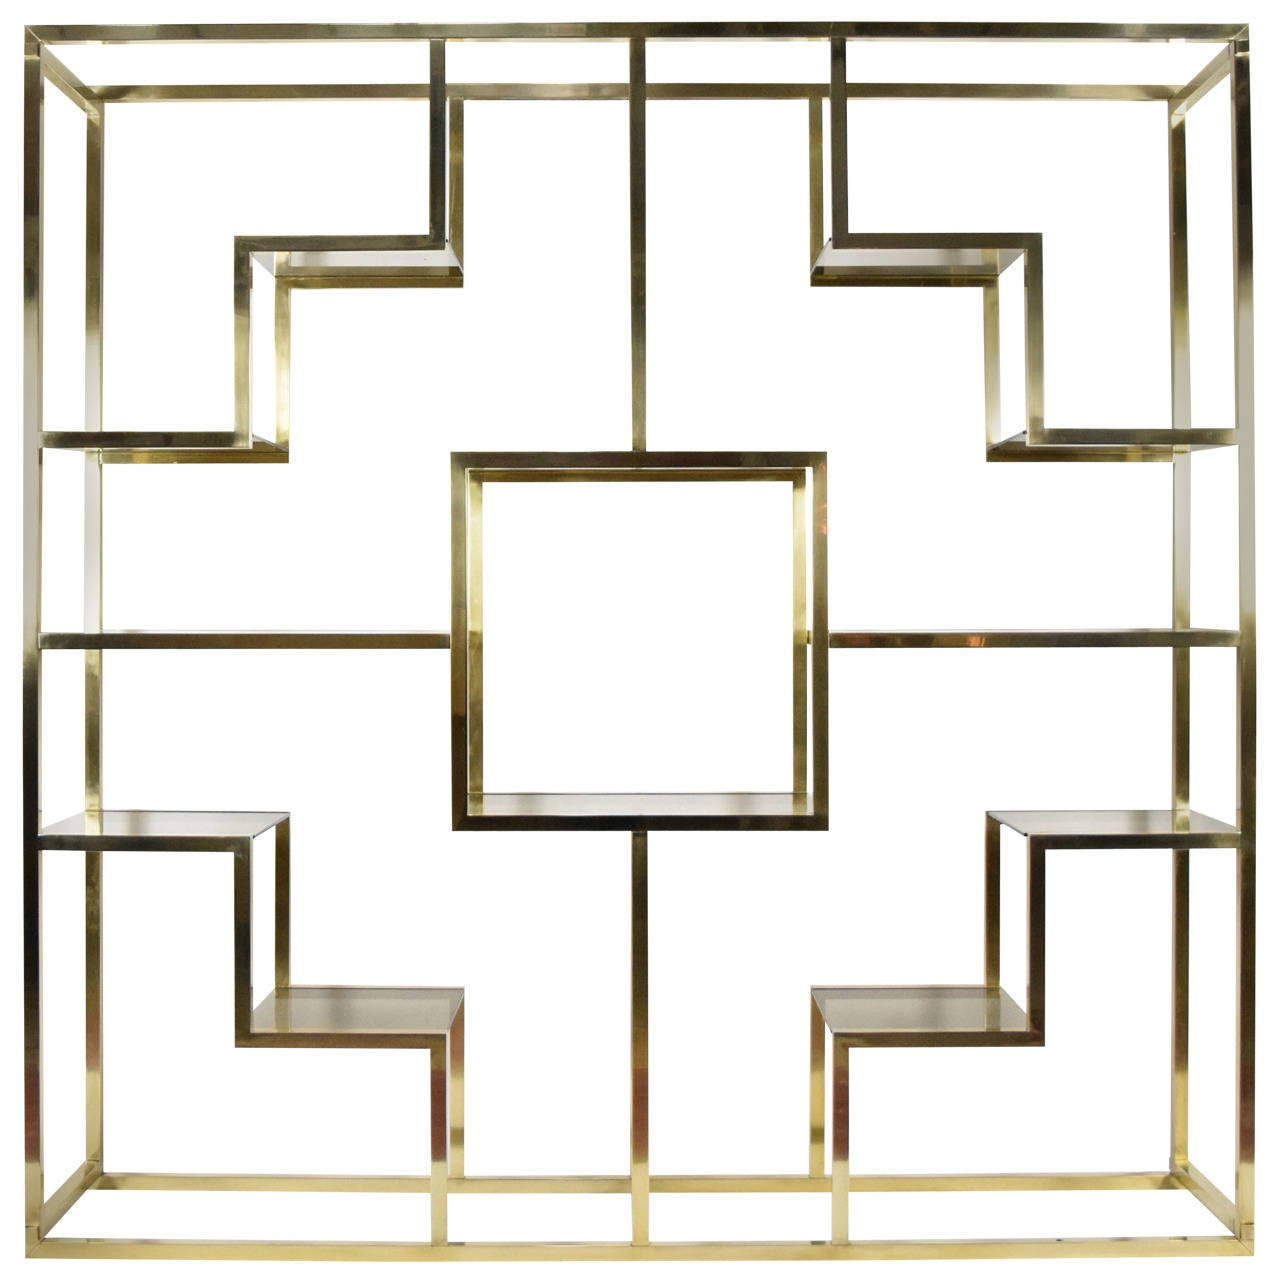 romeo rega brass and smoked glass tag re at 1stdibs. Black Bedroom Furniture Sets. Home Design Ideas